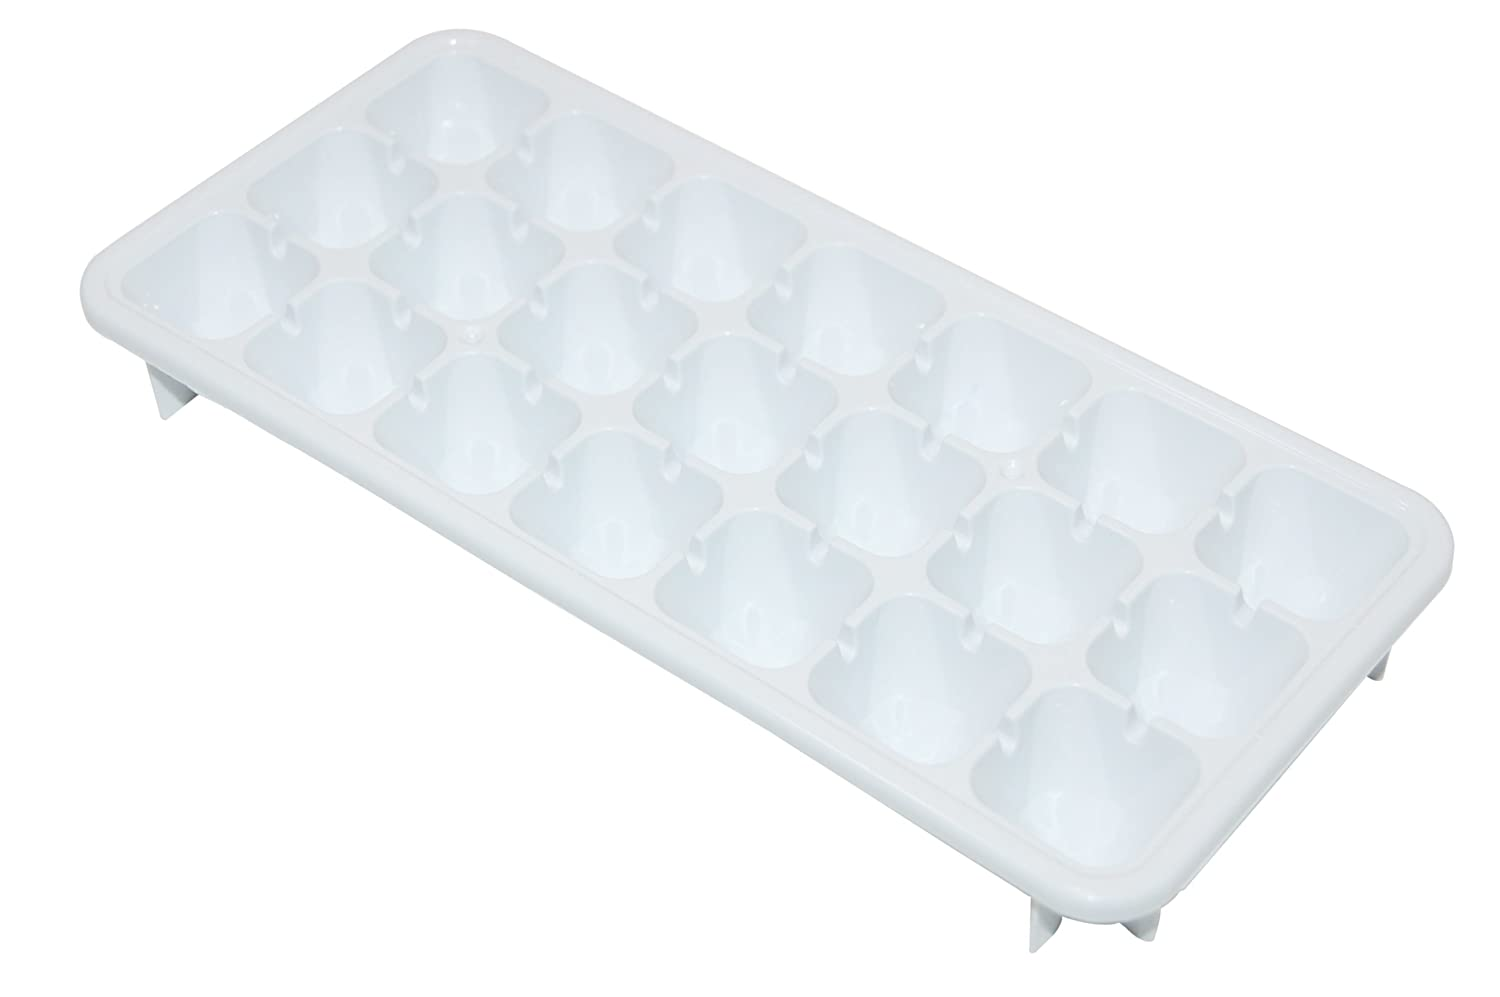 Beko Belling Flavel JMB Lec Leisure Swan Freezer Ice Cube Tray. Genuine part number 4232230100